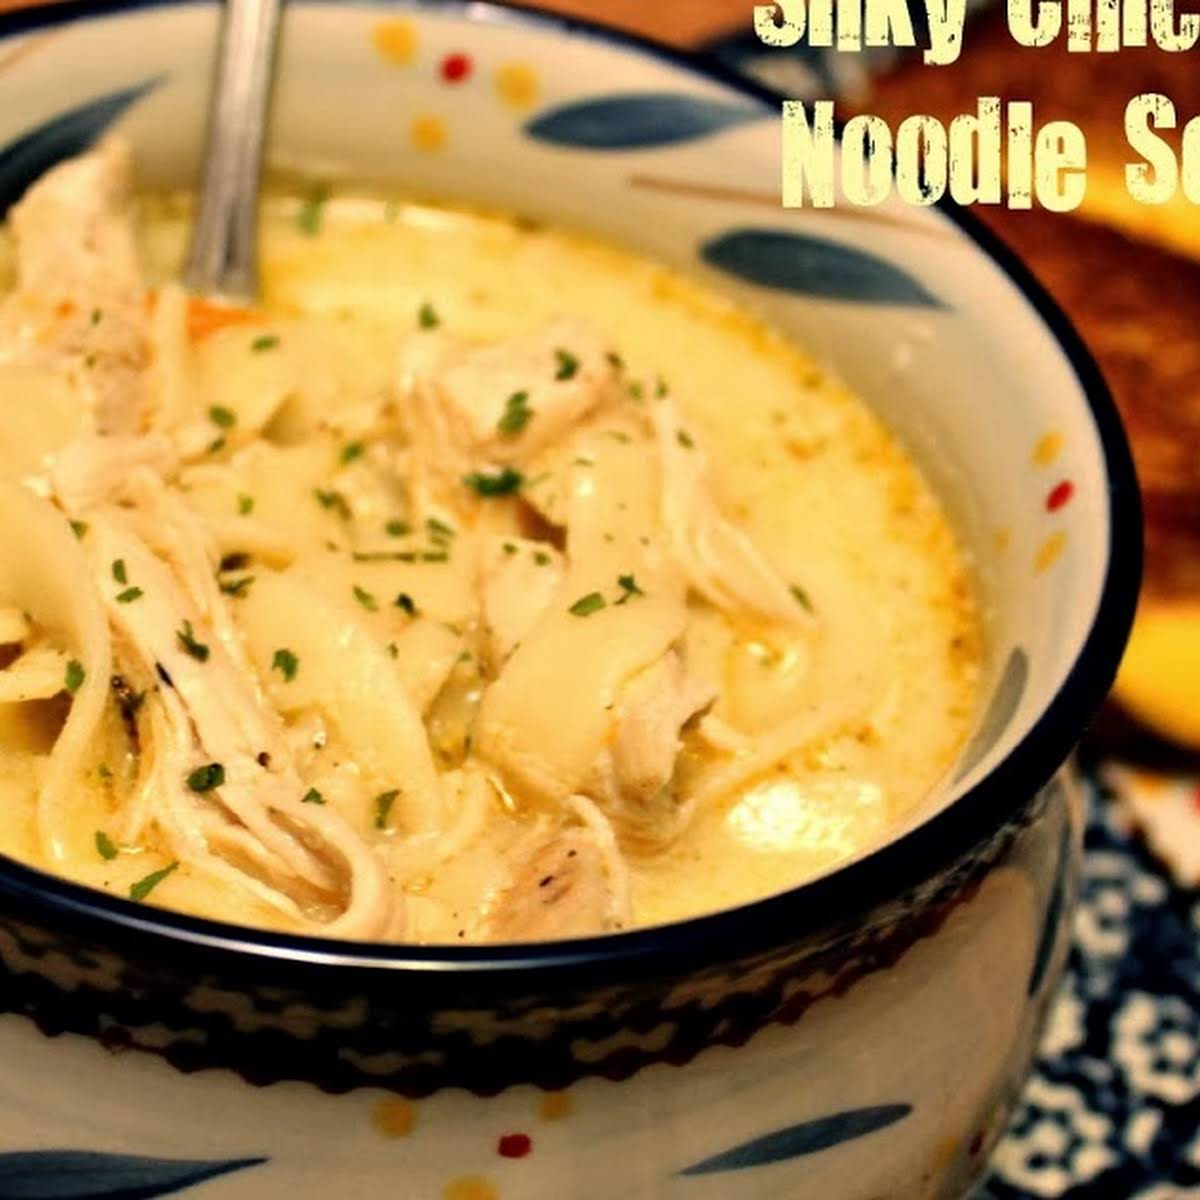 Silky Chicken Noodle Soup!